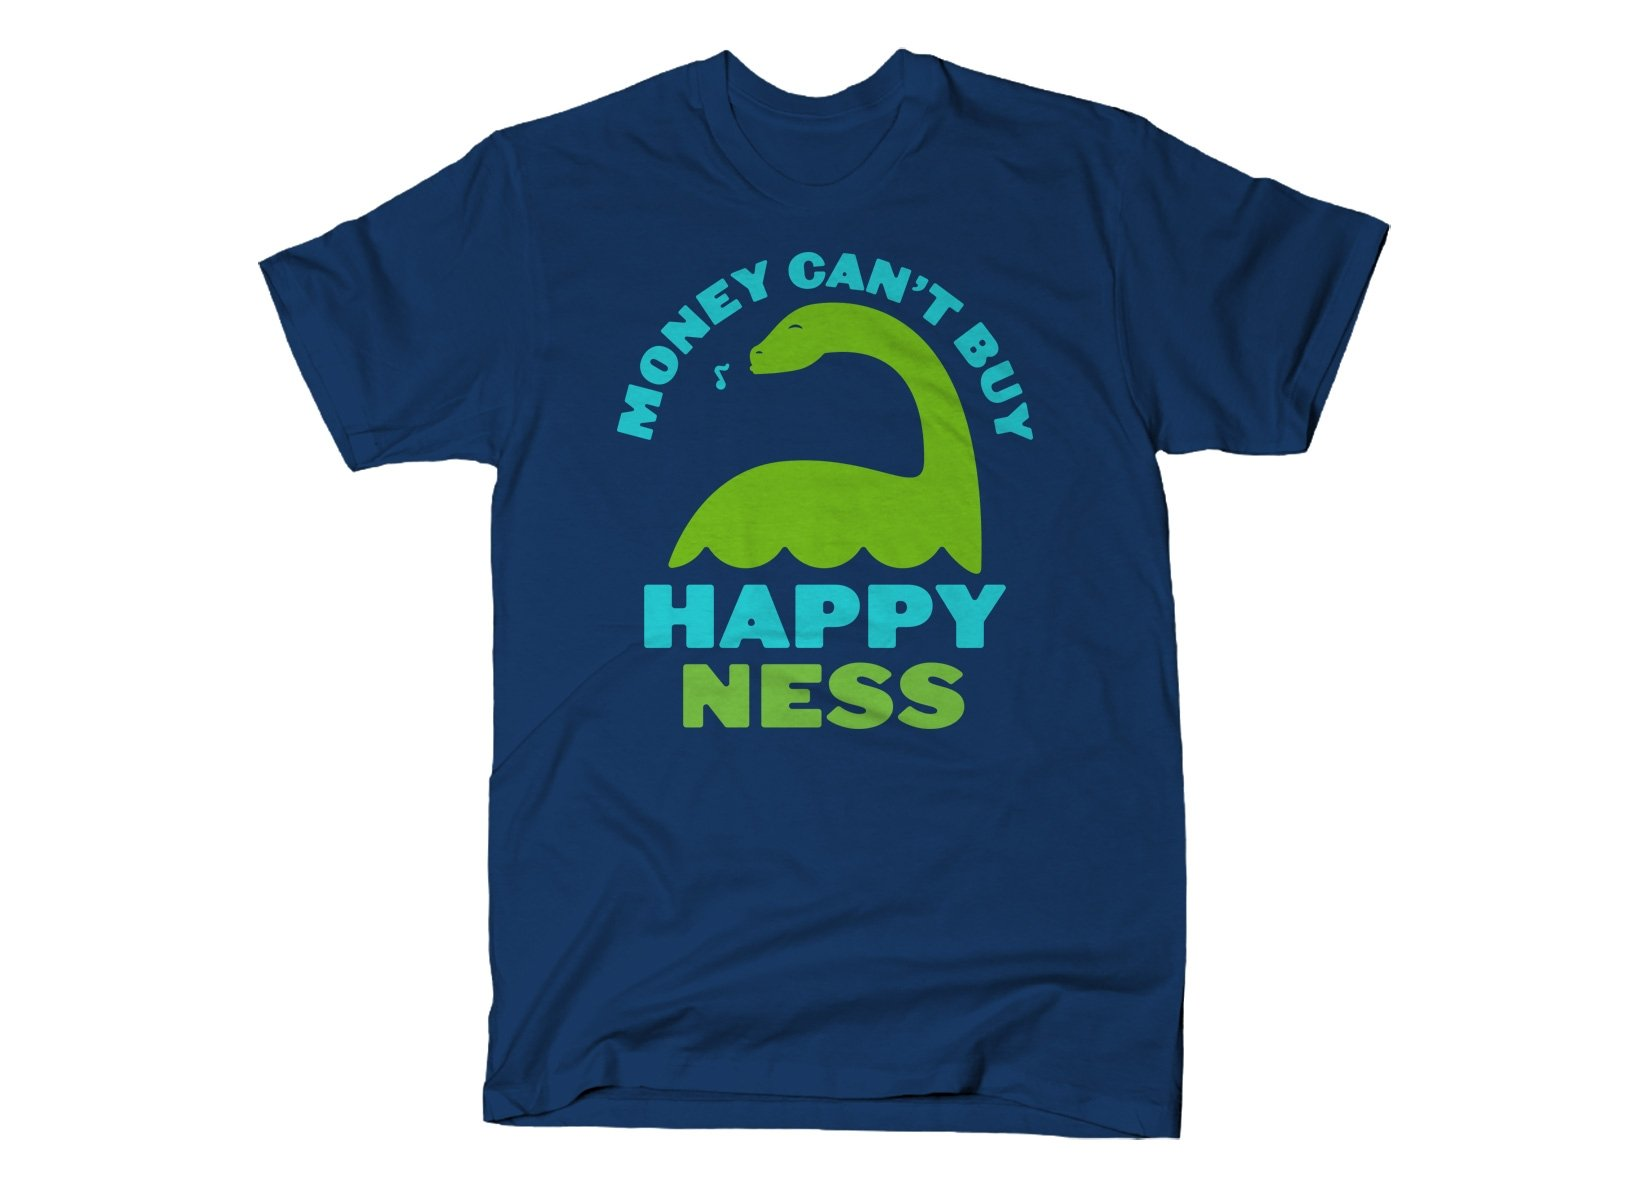 Money Can't Buy Happy Ness